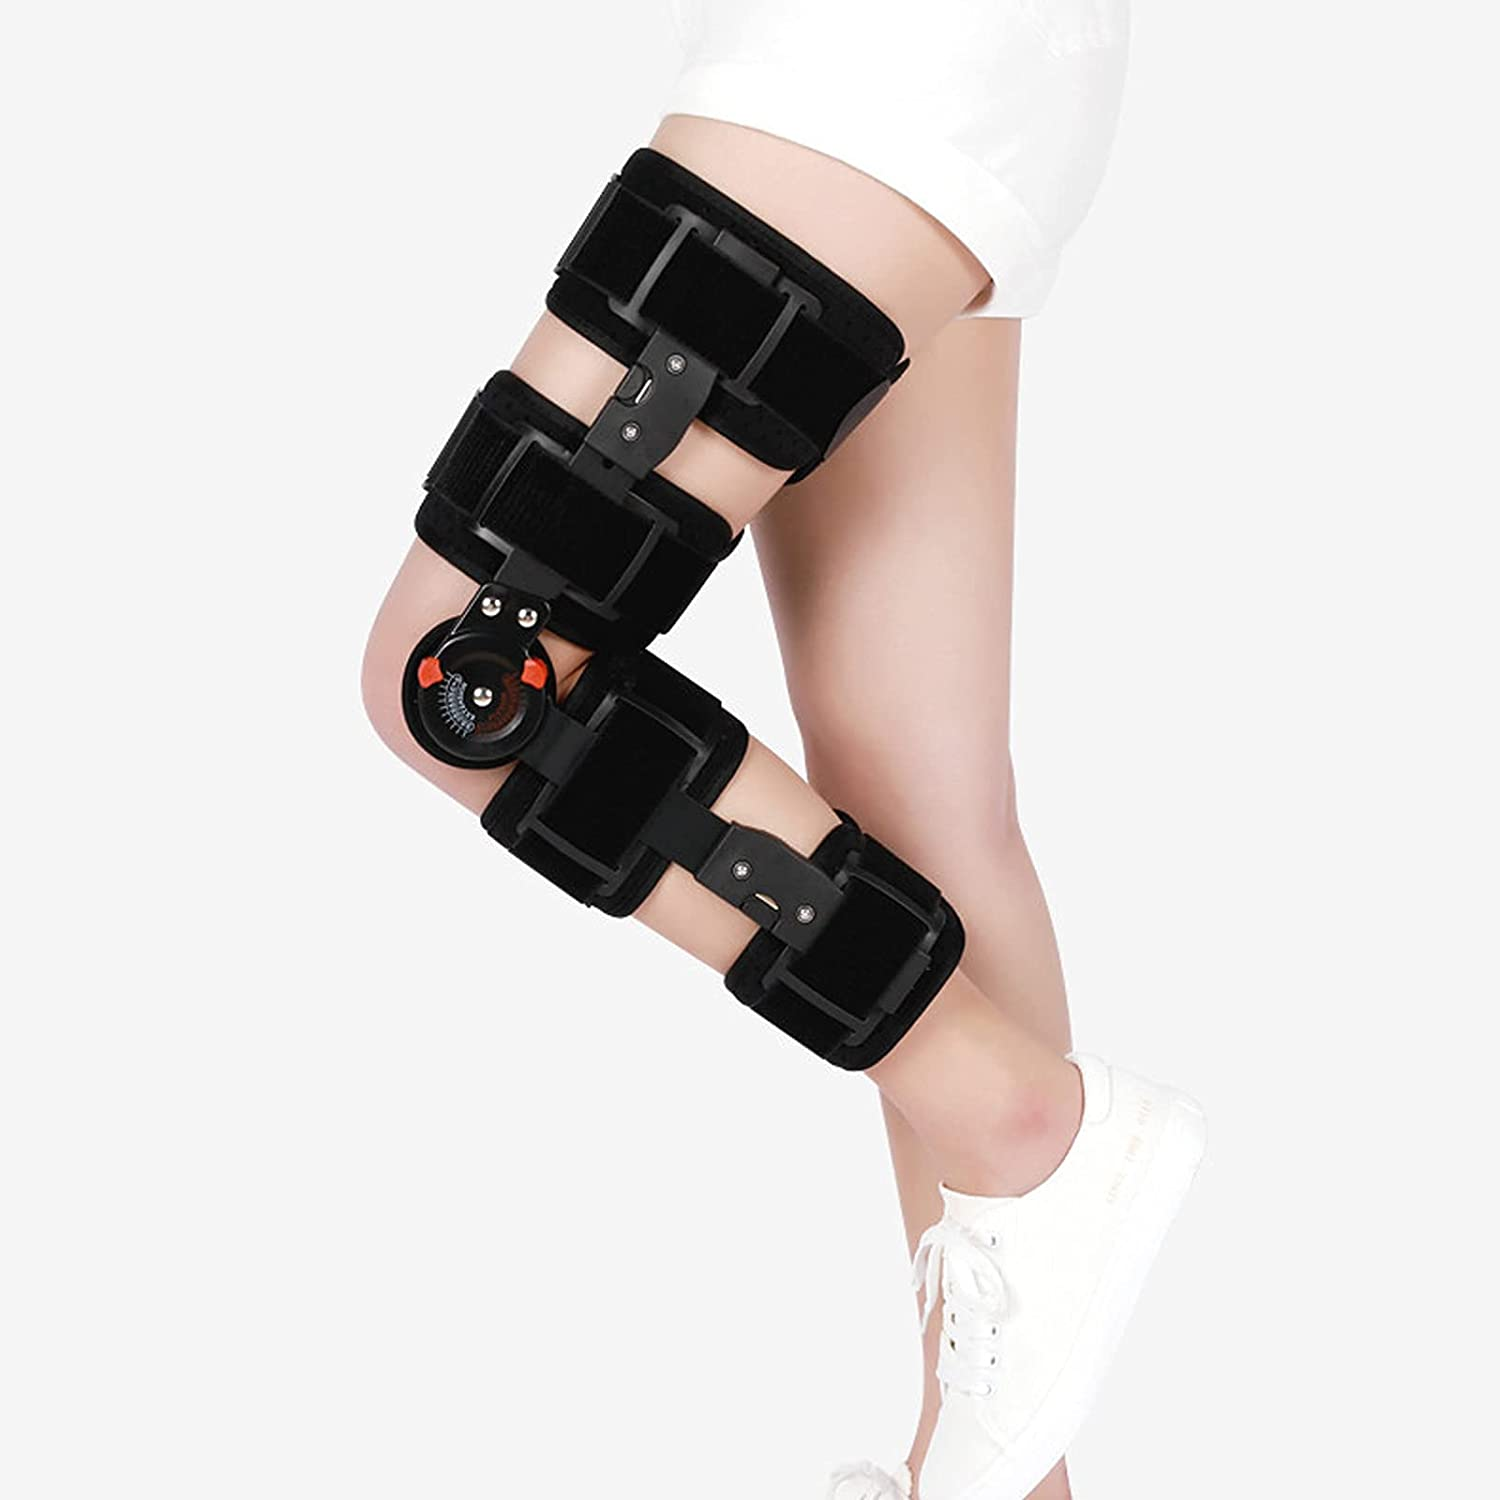 quality assurance LKKHOSC Knee Pads and Adjustable Help Now free shipping Straps Stabilize The Cross